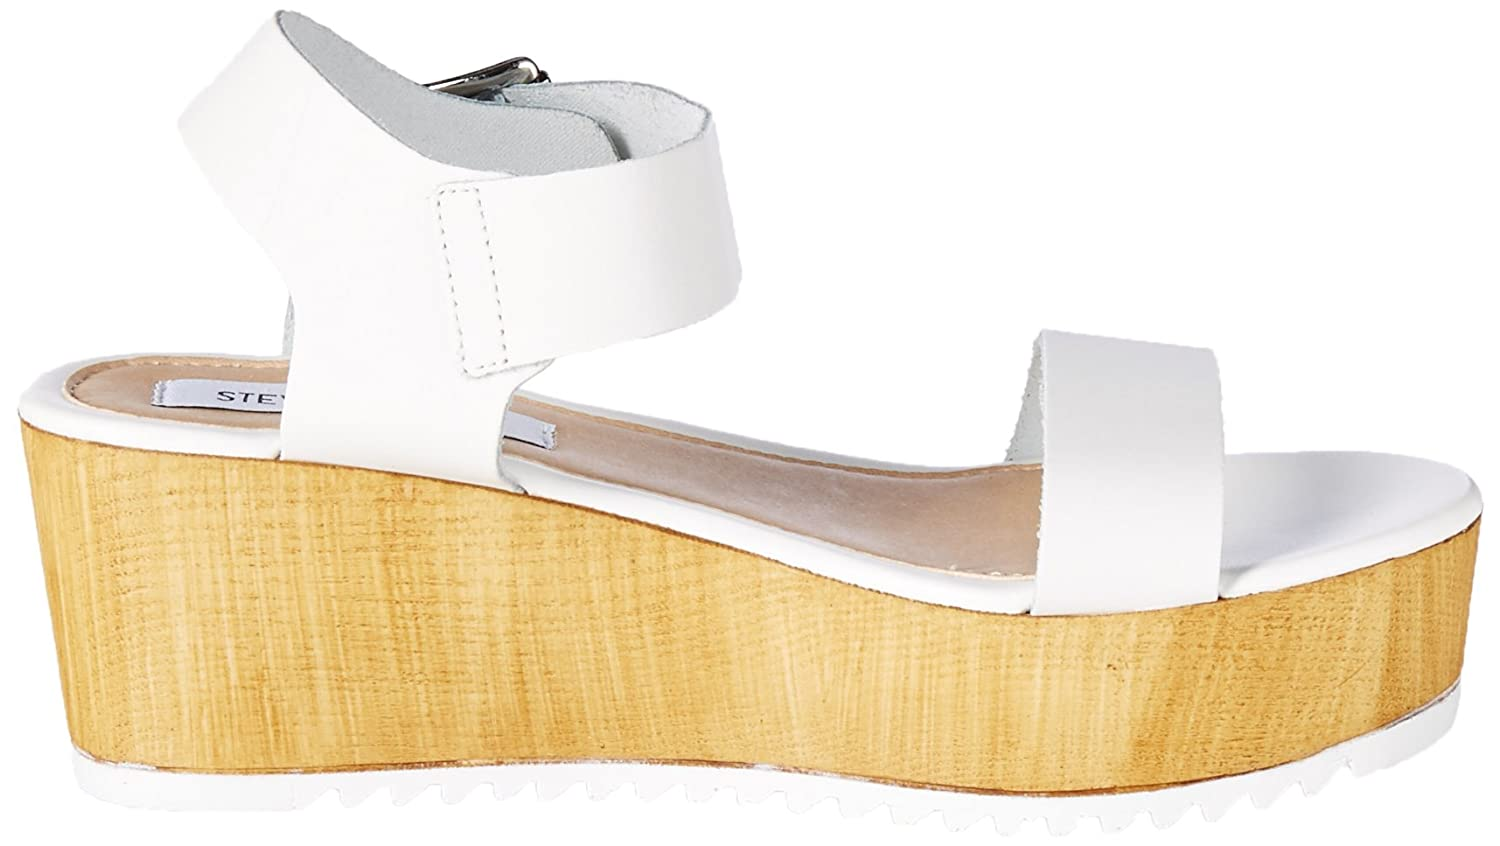 923f71fb6360 Steve Madden Women s Nylee Block Wedge Shoes  Amazon.co.uk  Shoes   Bags